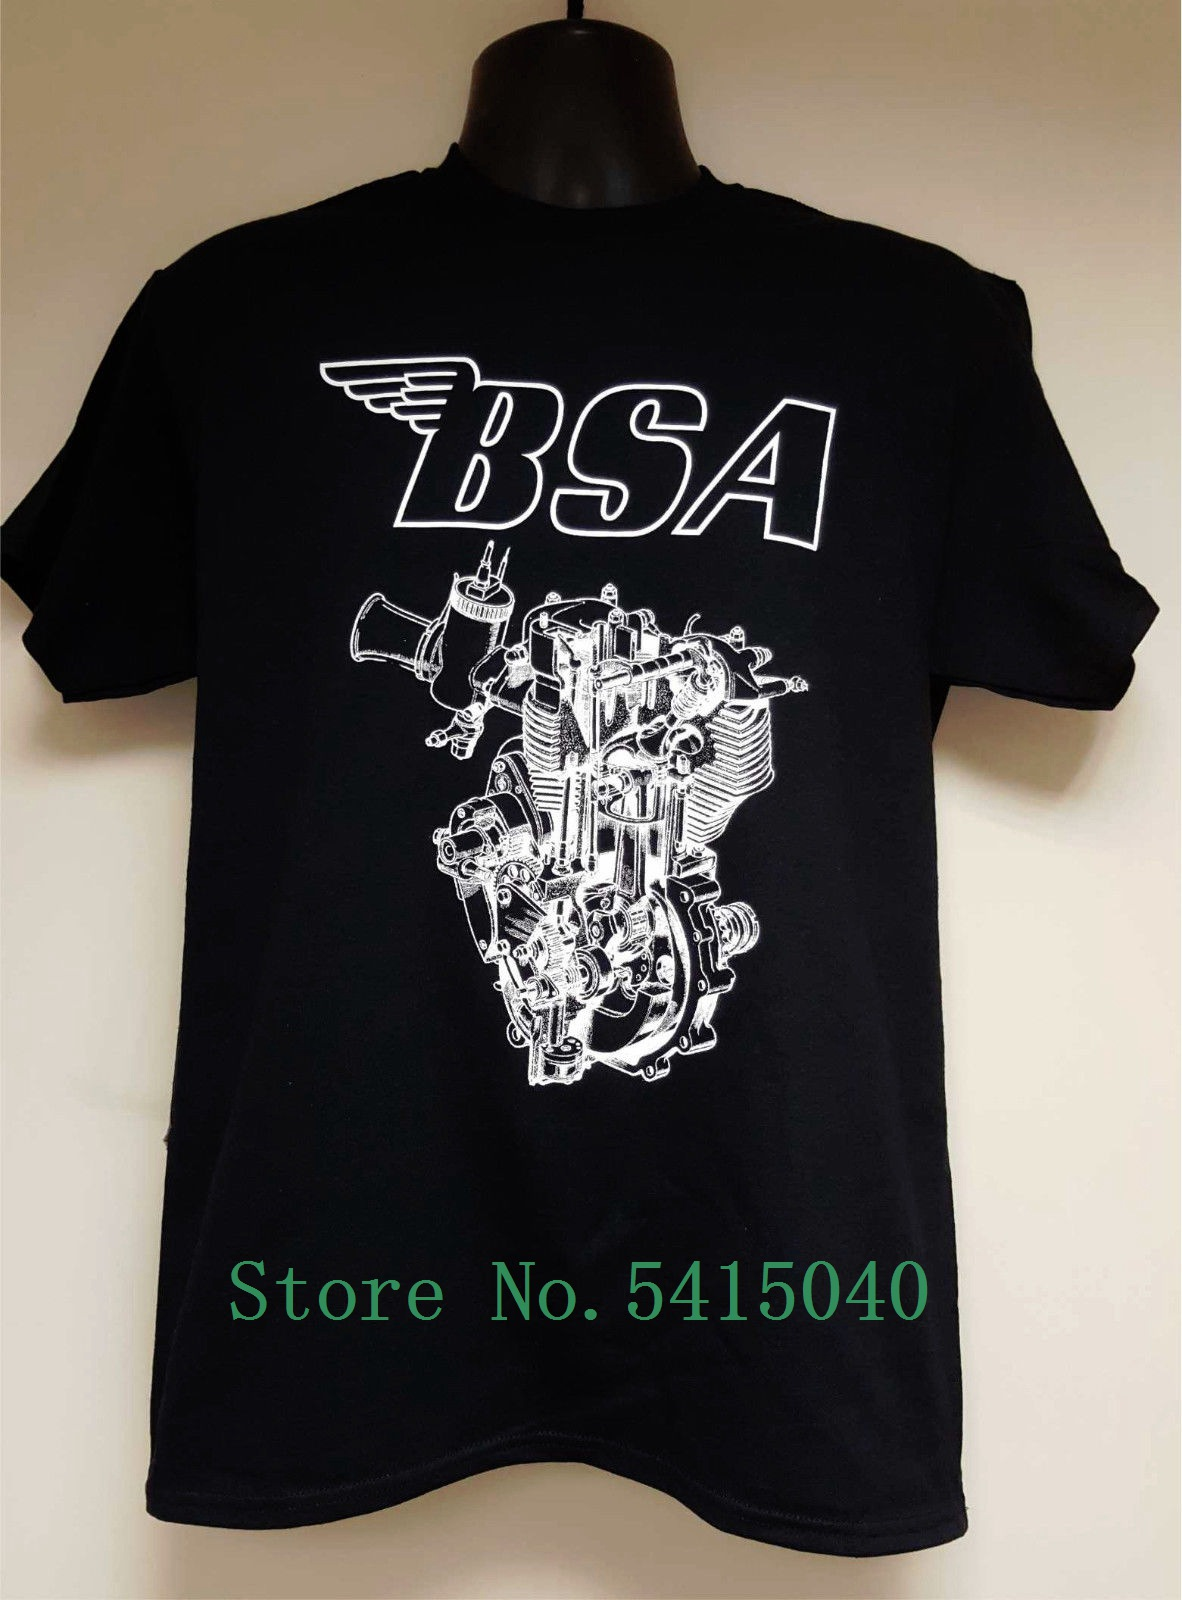 Men's Official Licensed Motorbike T-<font><b>Shirt</b></font> -<font><b>Bsa</b></font> Engine Design Cartoon T <font><b>Shirt</b></font> Men Fashion New Unisex Tshirt Loose Size Top Ajax image